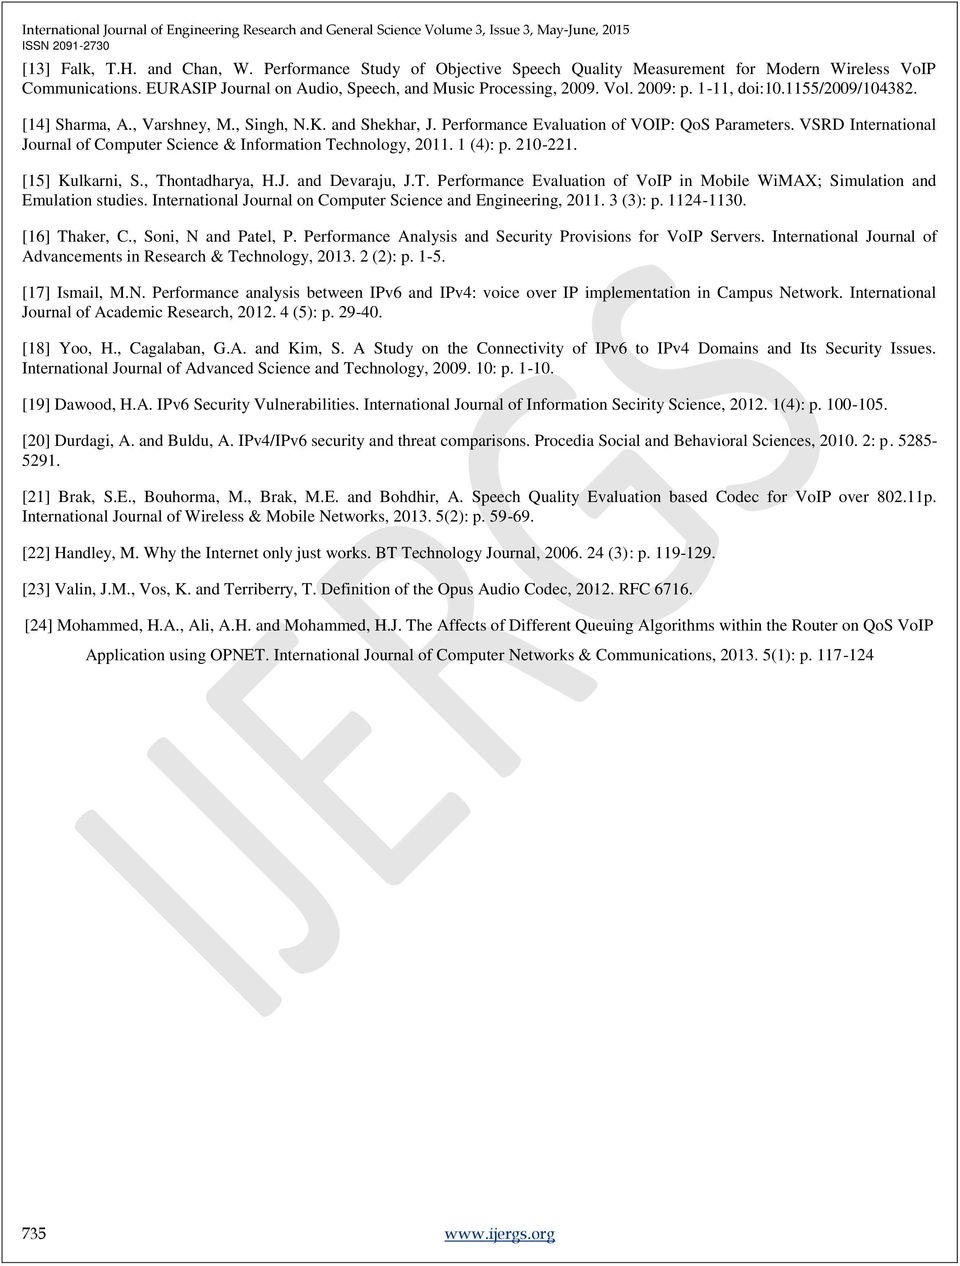 VSRD International Journal of Computer Science & Information Technology, 2011. 1 (4): p. 210-221. [15] Kulkarni, S., Thontadharya, H.J. and Devaraju, J.T. Performance Evaluation of VoIP in Mobile WiMAX; Simulation and Emulation studies.